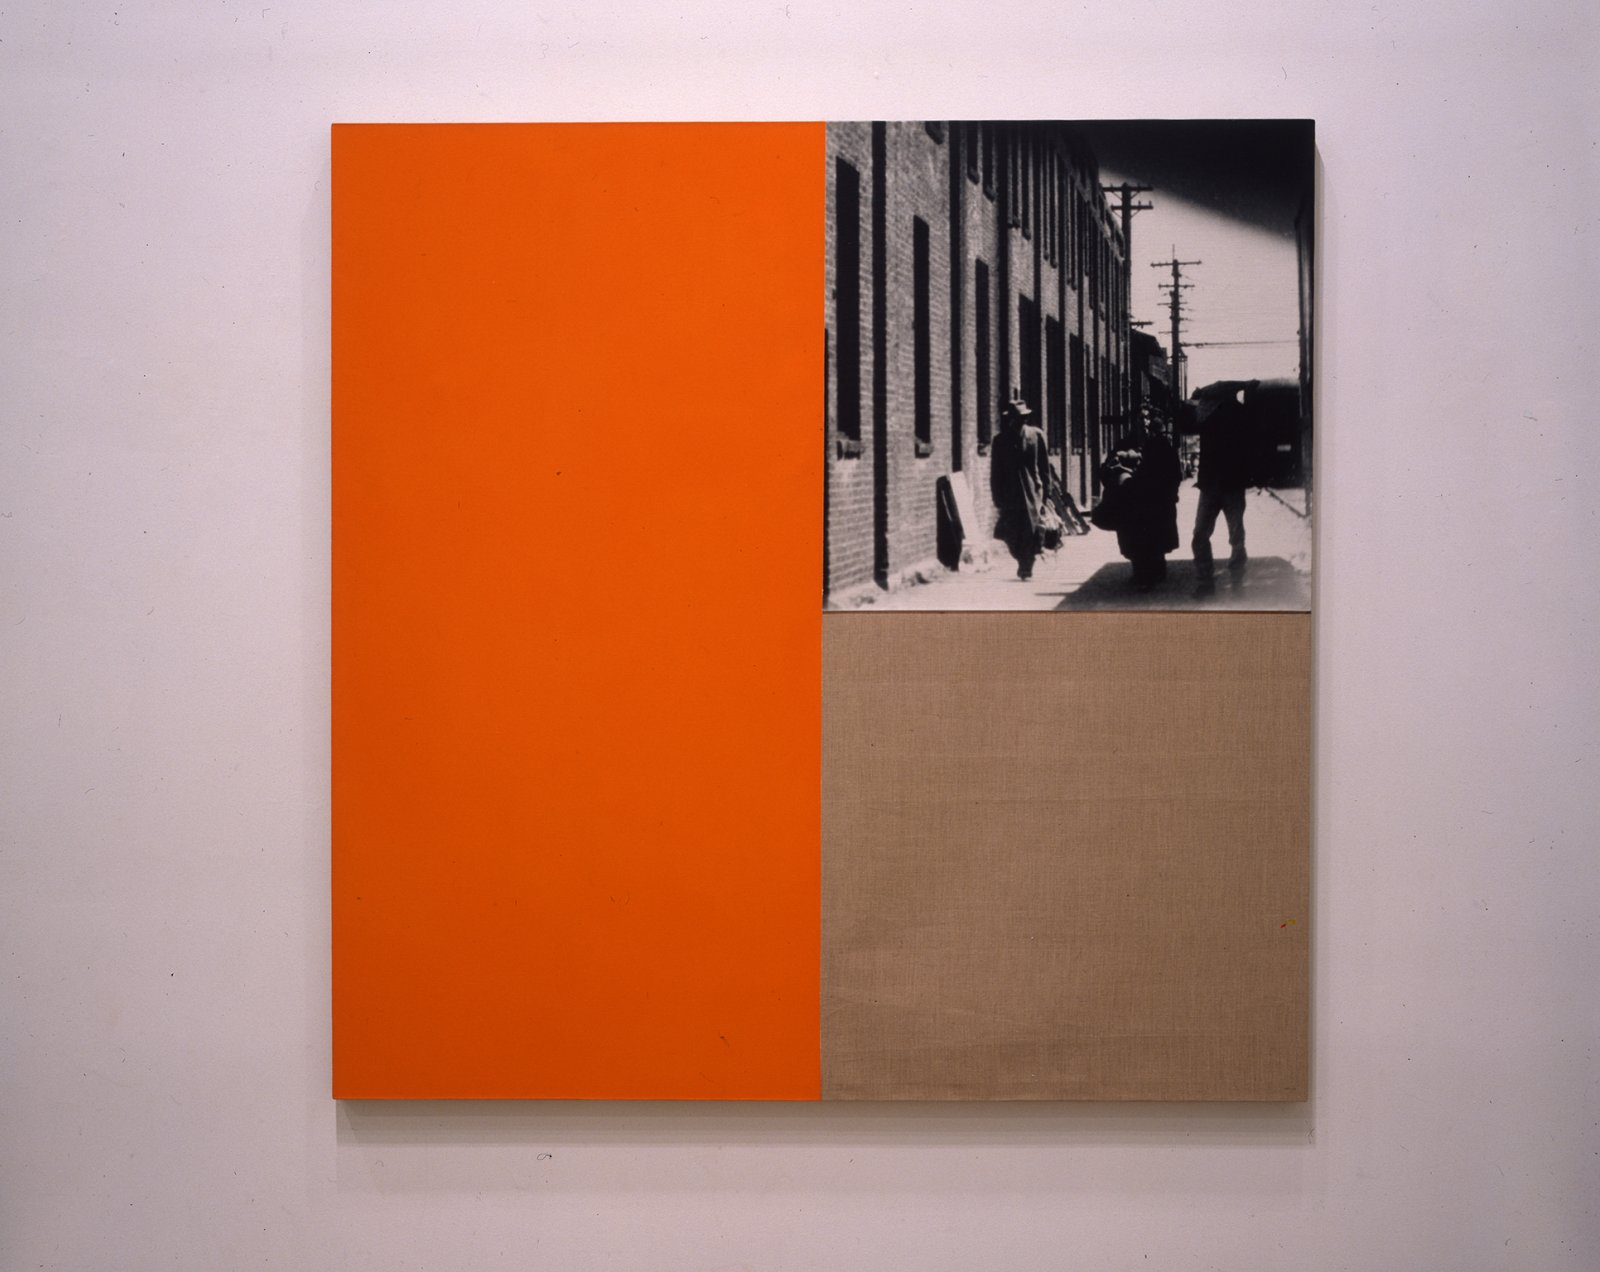 Ian Wallace,Poverty Image with Orange, 1987,photolaminate and acrylic on canvas,60 x 60 in. (152 x 152 cm)